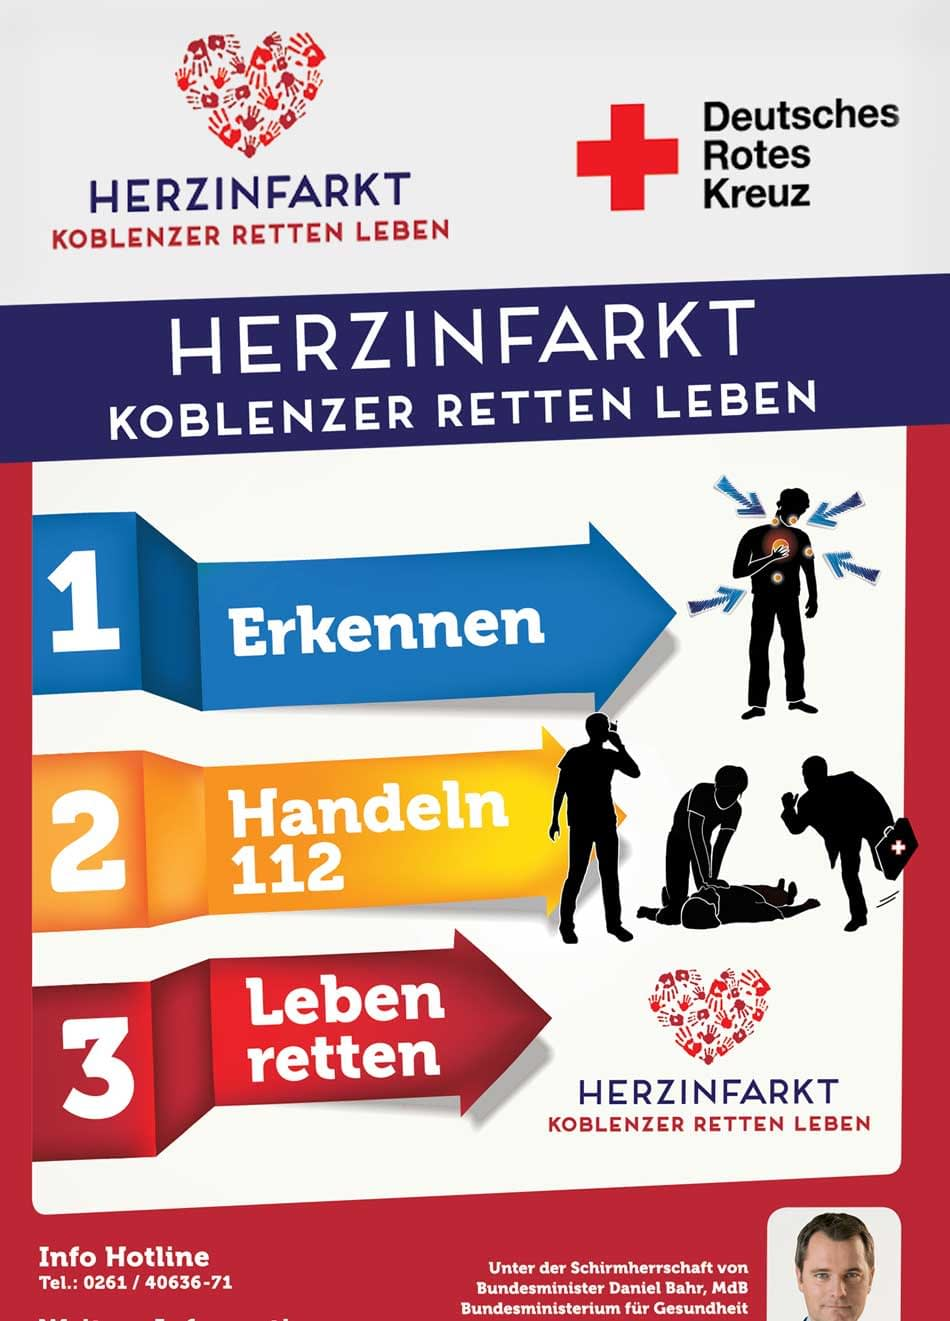 Featured Image German Red Cross Herzinfarkt heart attach campaign